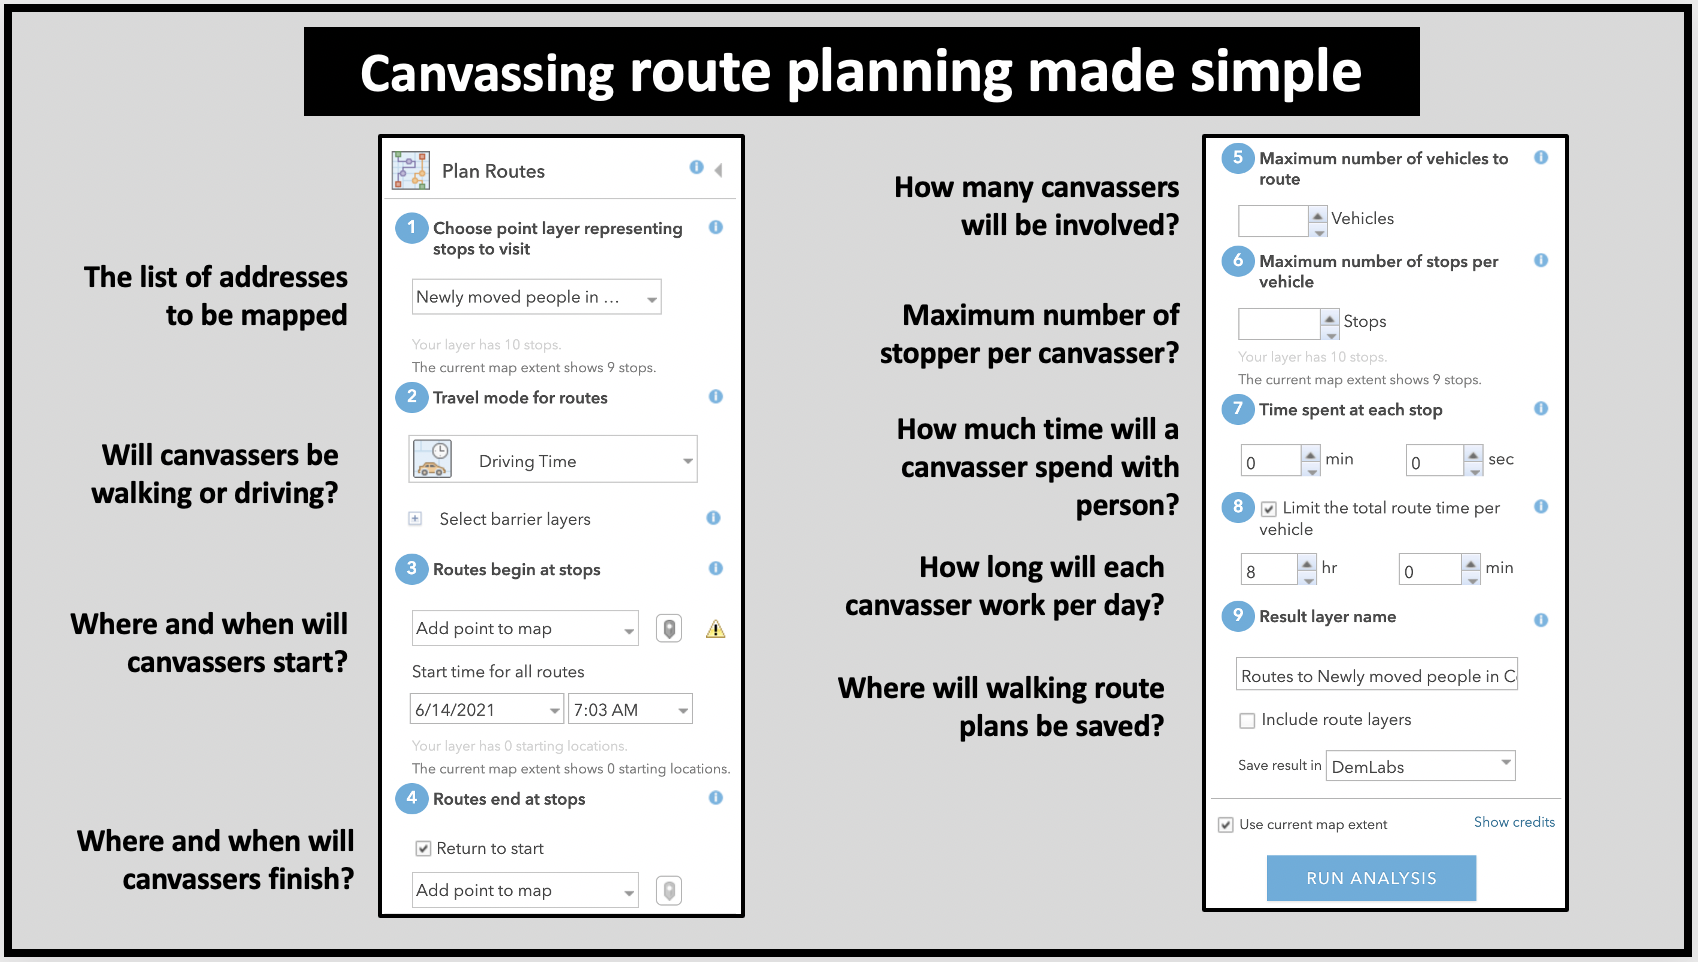 Use ArcGIS Online which costs $150/year for nonprofits to create better route plans and walking routes for canvassers.